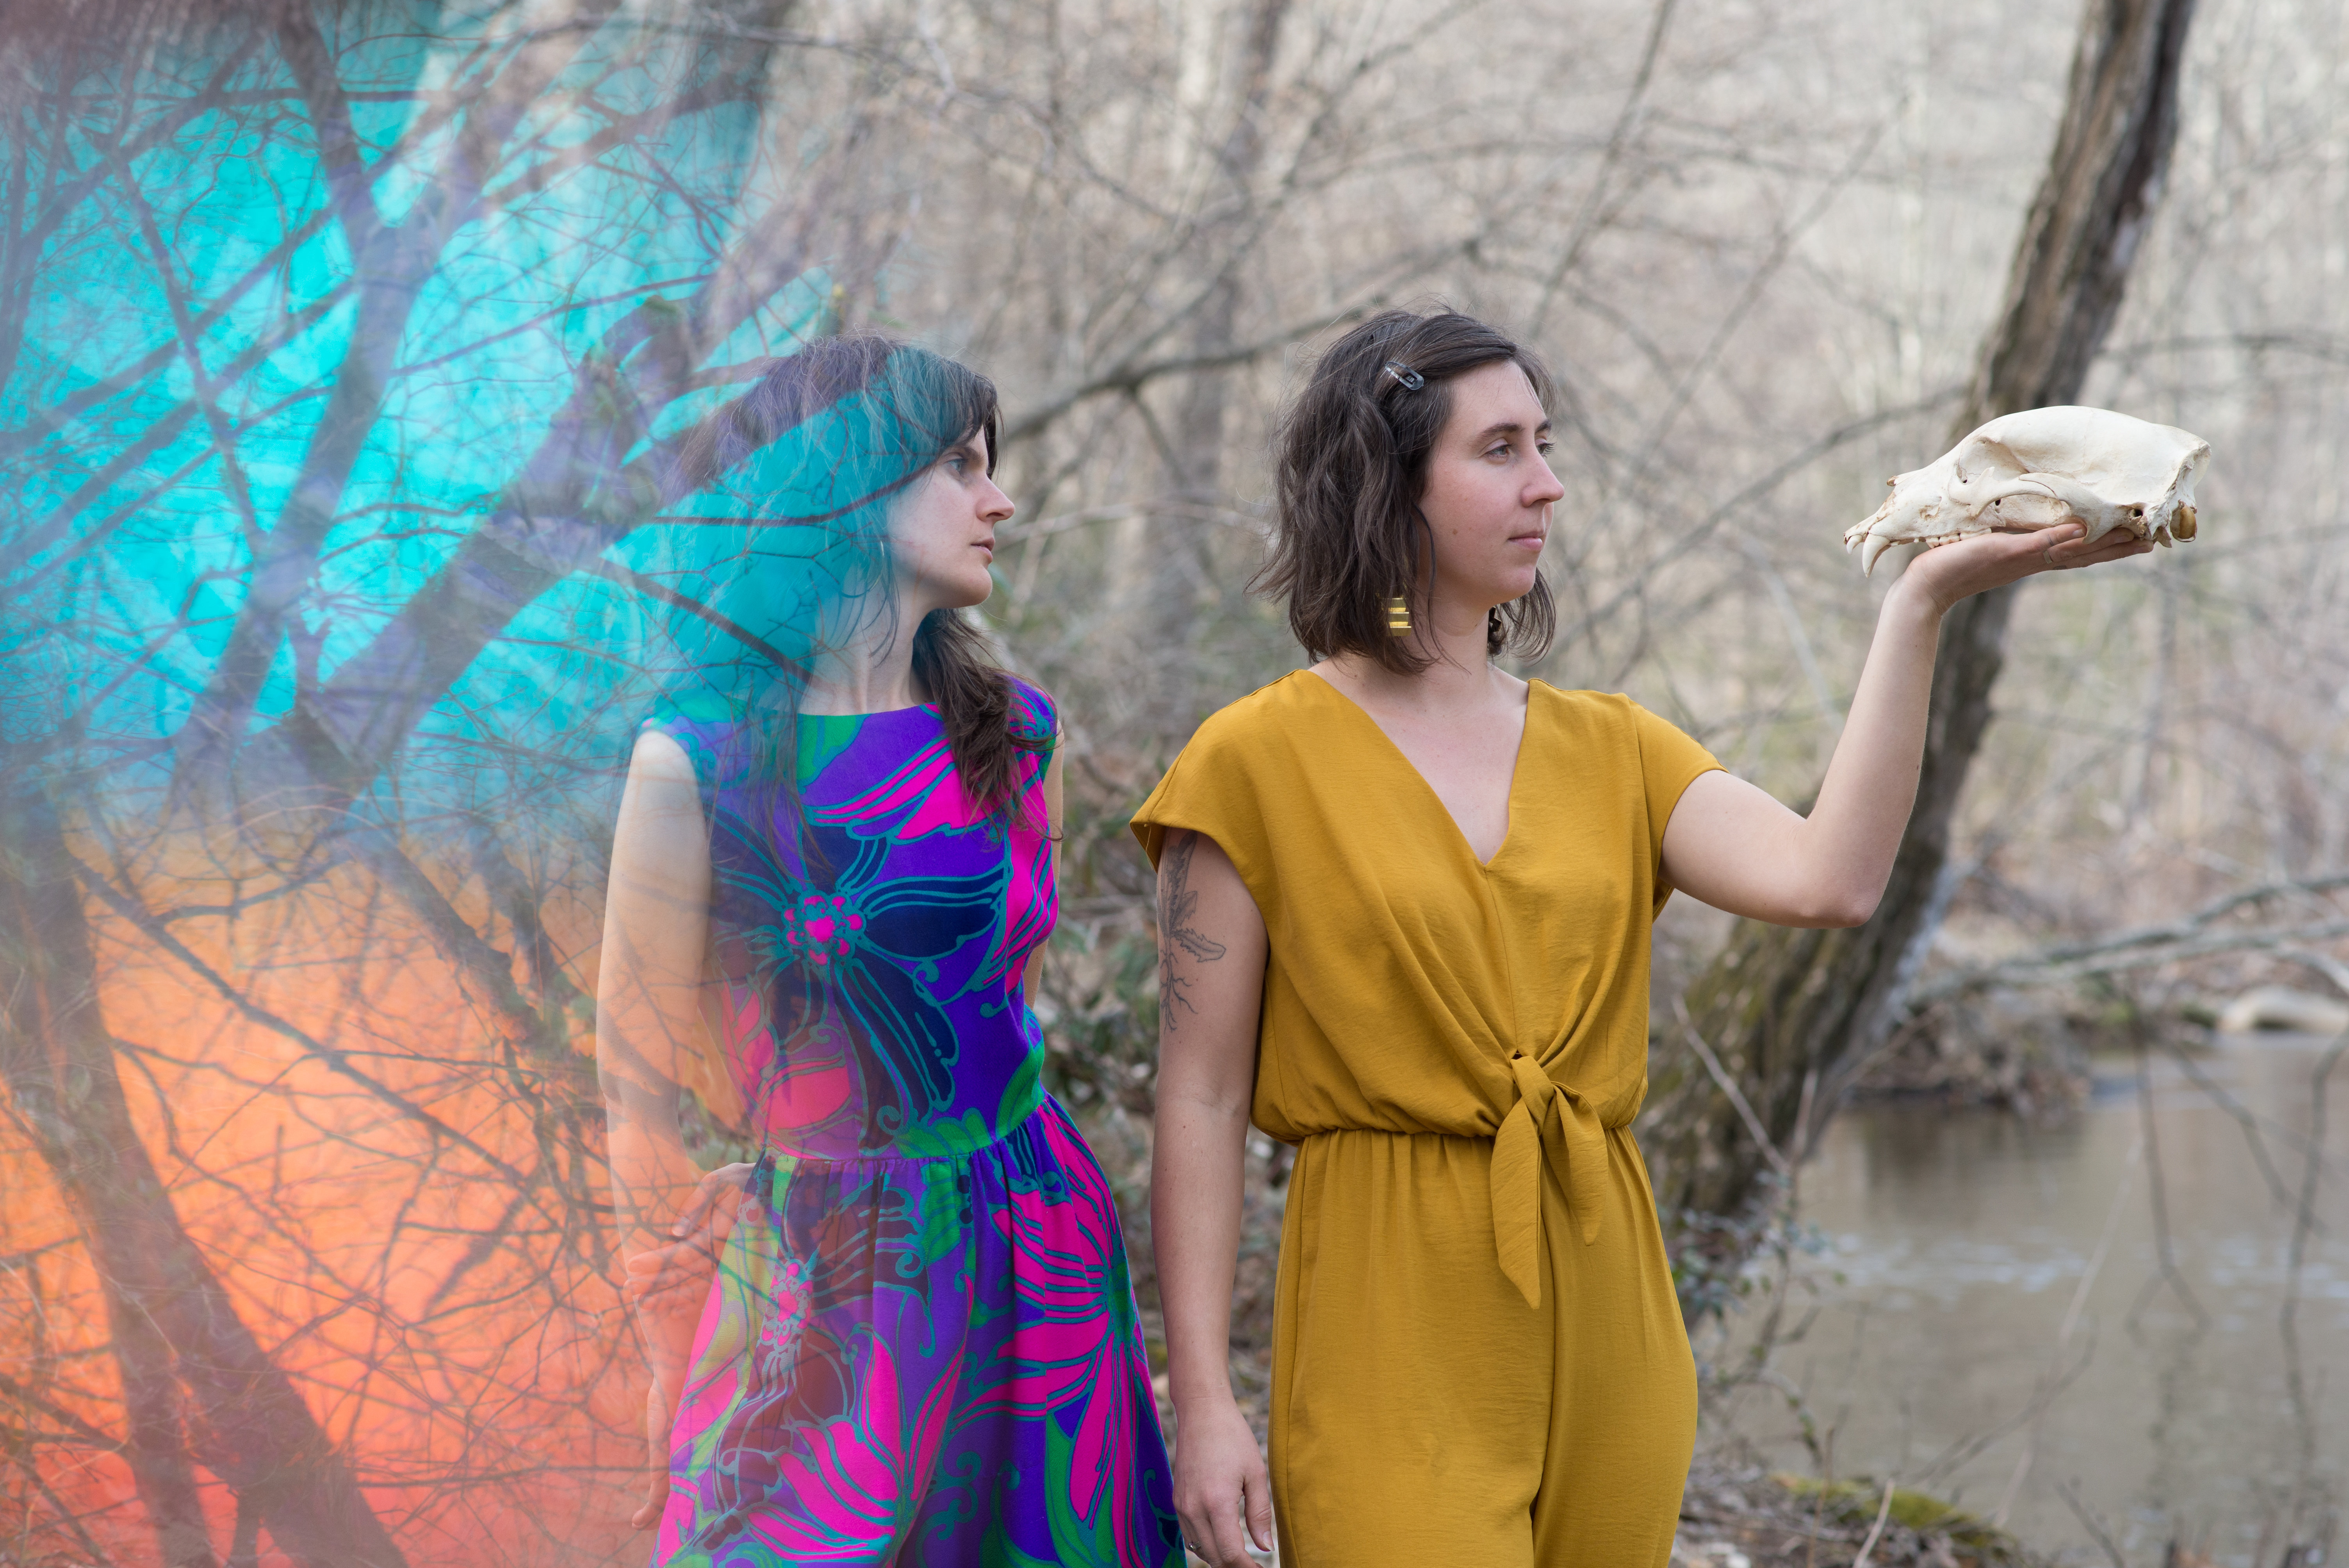 House and Land Breath New Life Into Folk and Ballad Songs While Honoring the Past